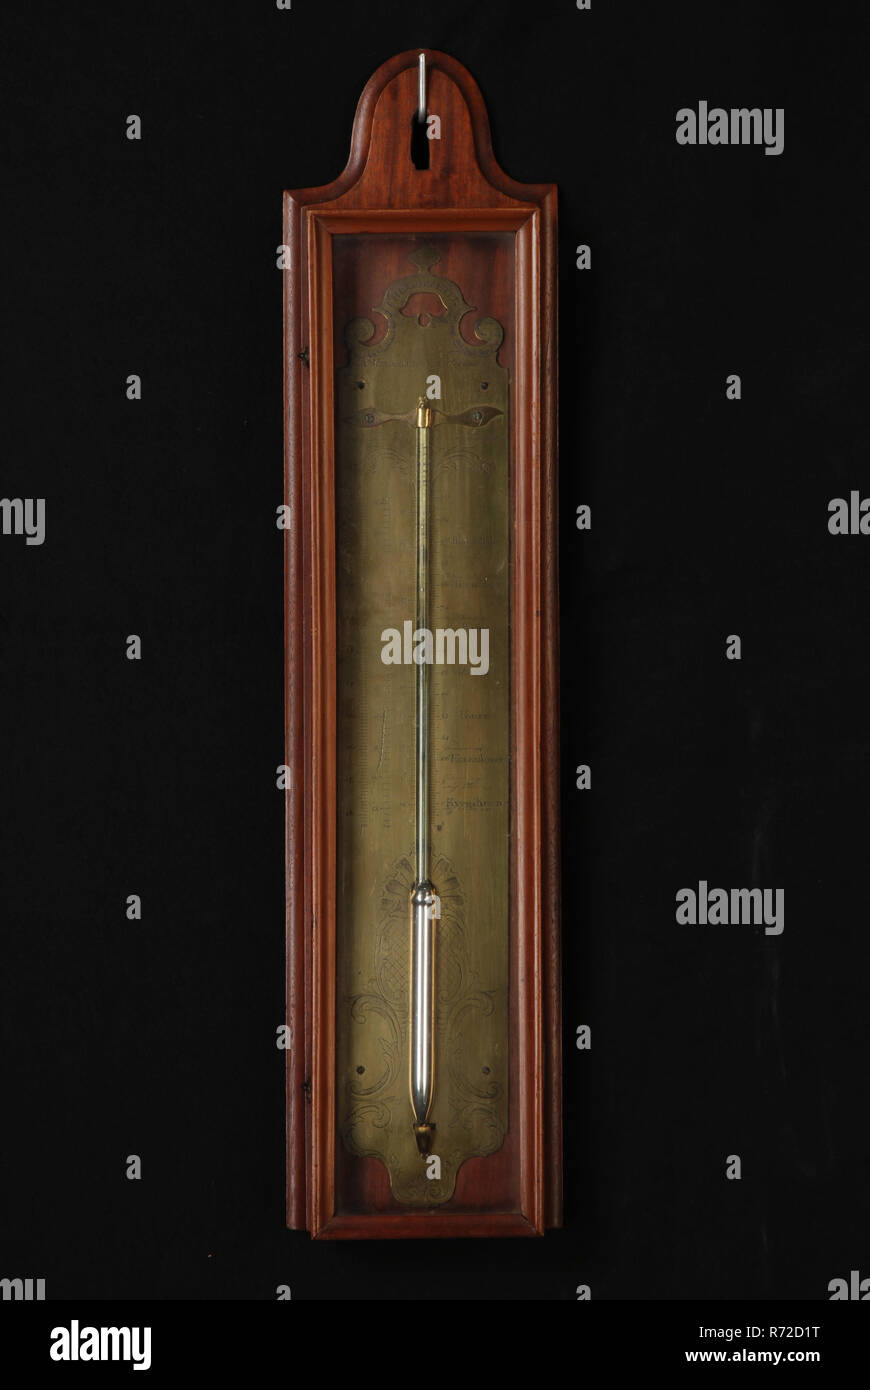 A. Reballio, Thermometer with engraved brass plate with glass thermometer tube and three different temperature scales from Réaumur, La Court and Fahrenheit, thermometer measuring instrument wood mahogany glass brass iron mercury h 60.0, cabinet thermometer An elongated mahogany cabinet with elongated glass door contains an engraved brass plate with glass mercury column on the plate shell - and leaf ornaments indications of temperature for which three different scales and signature At the scale in Fahrenheit at the respective temperatures are also experience types and location notifications whe - Stock Image